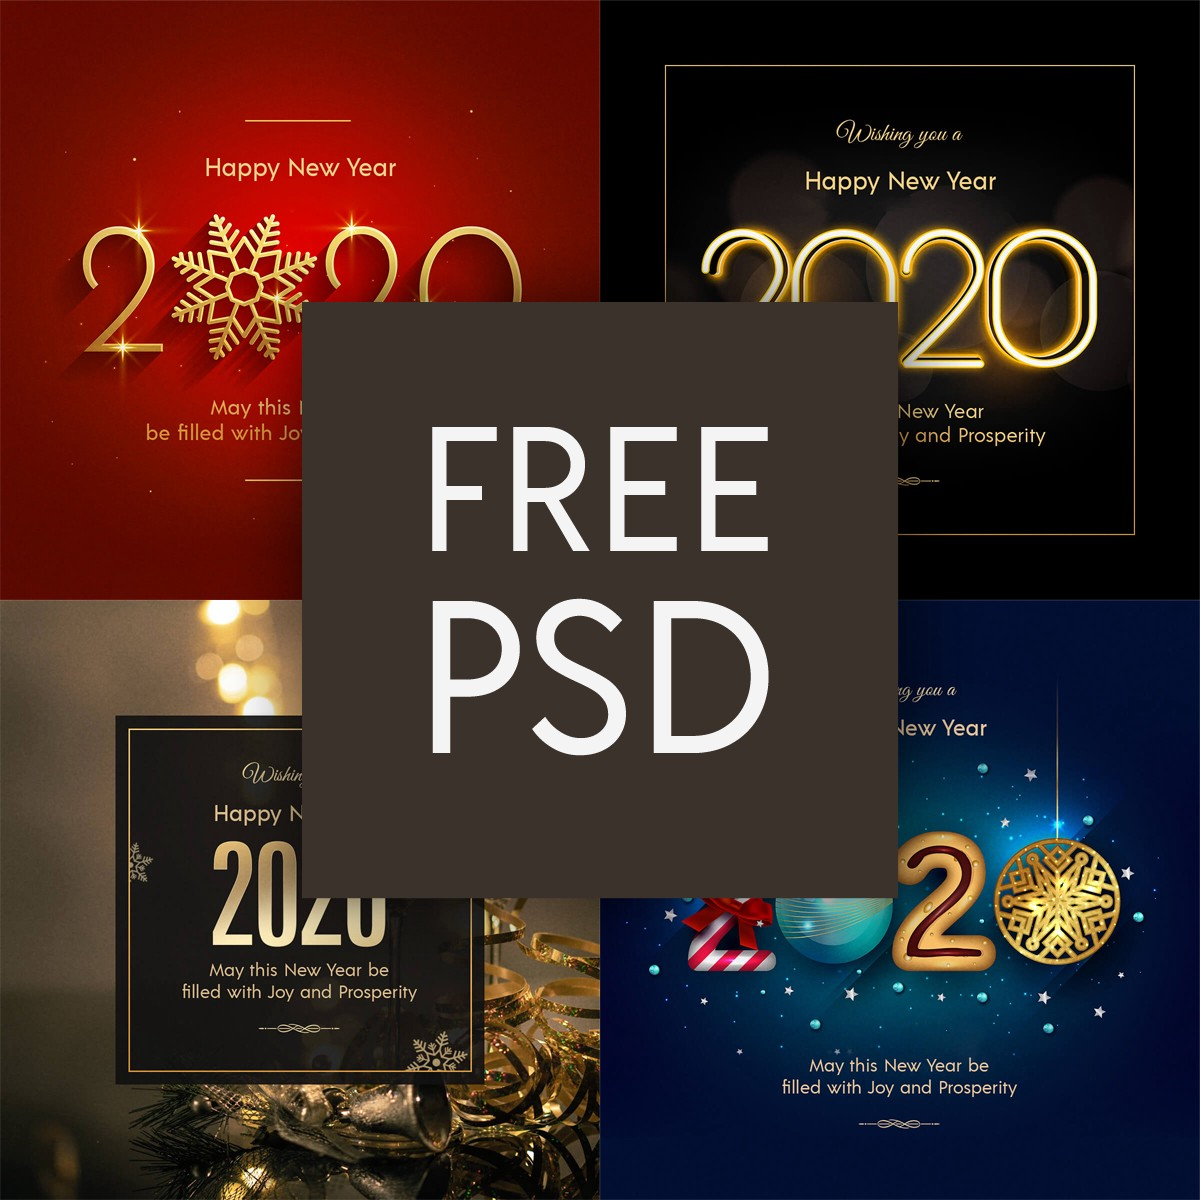 happy new year 2020 images free psd by click3d medium happy new year 2020 images free psd